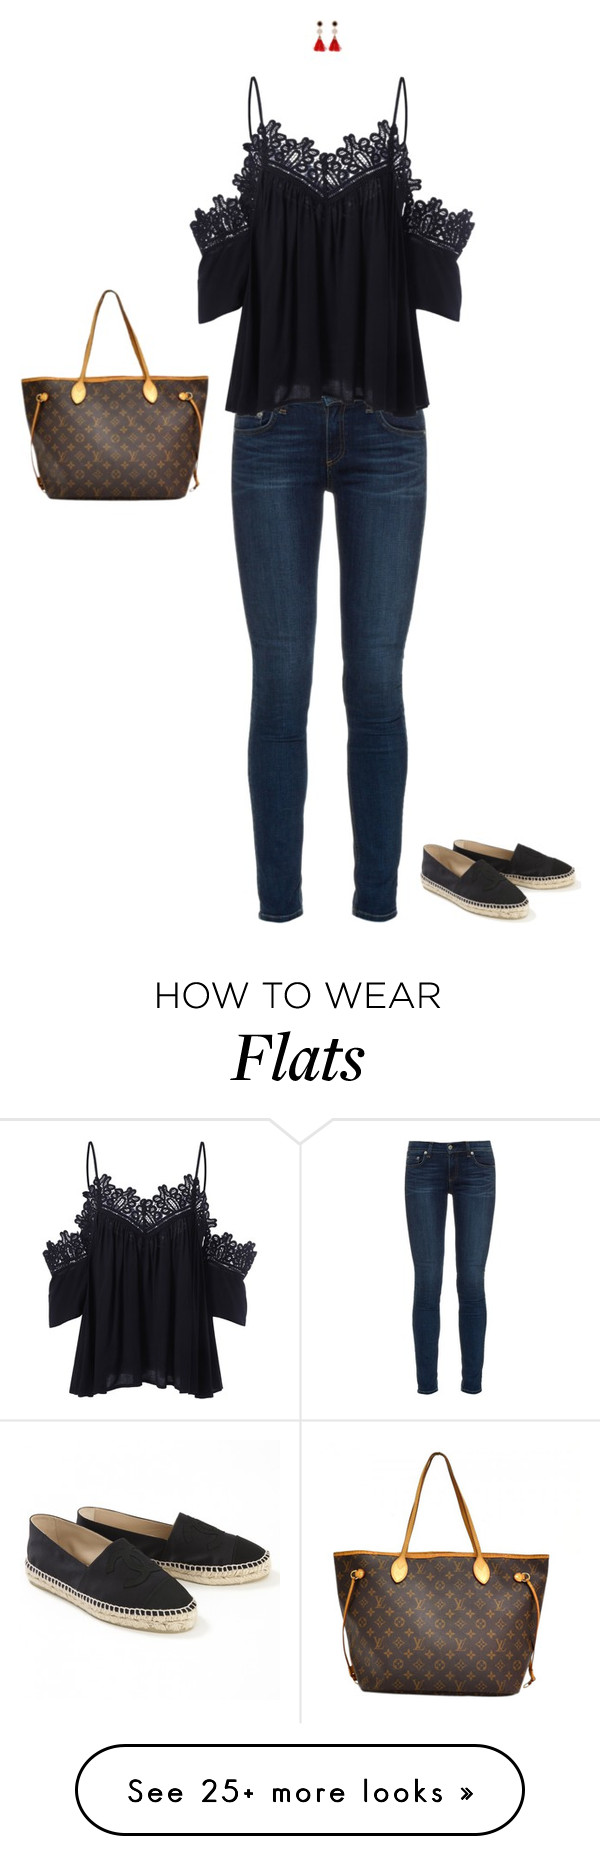 """""""Dinner in San Marino"""" by mrs-snow on Polyvore featuring rag & bone, Chanel and Louis Vuitton"""